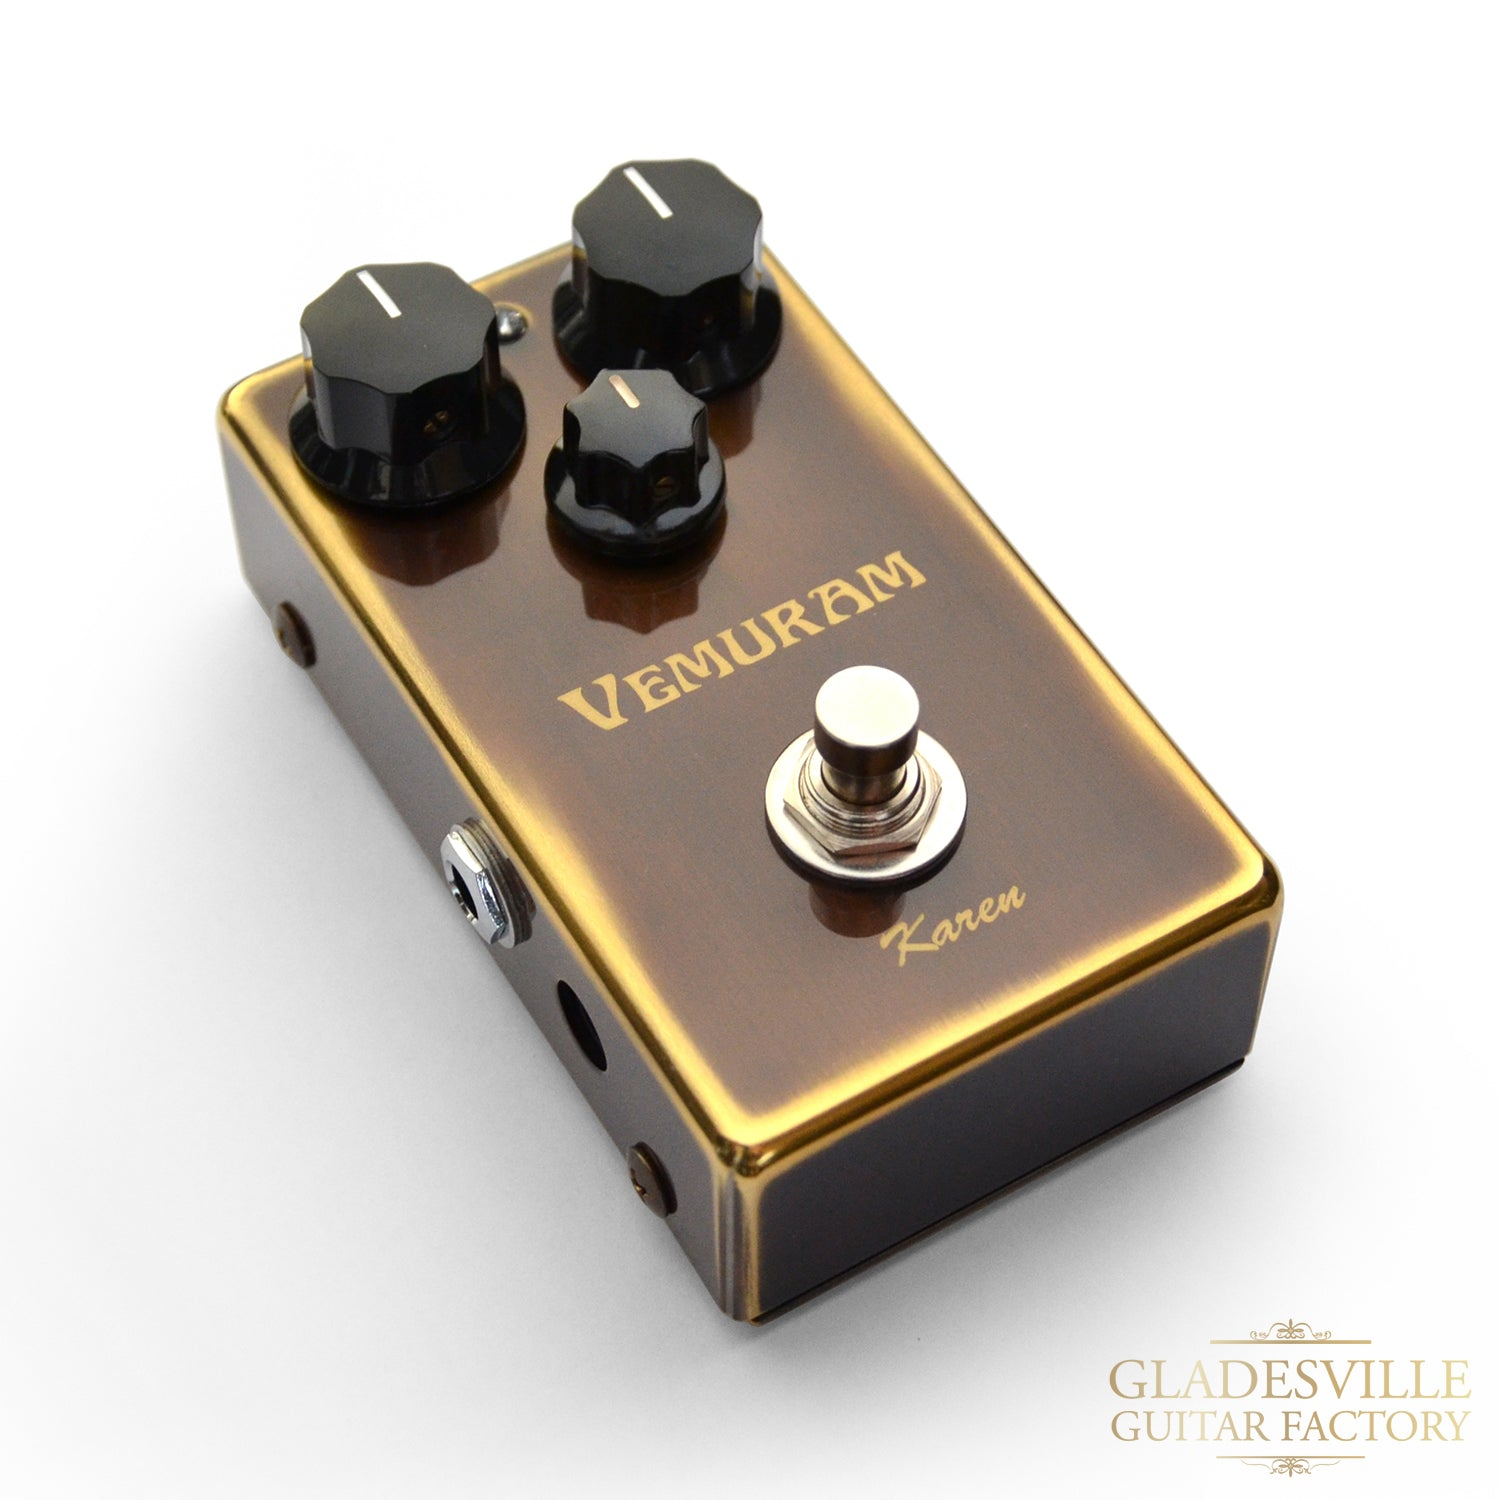 Vemuram Karen Distortion Pedal